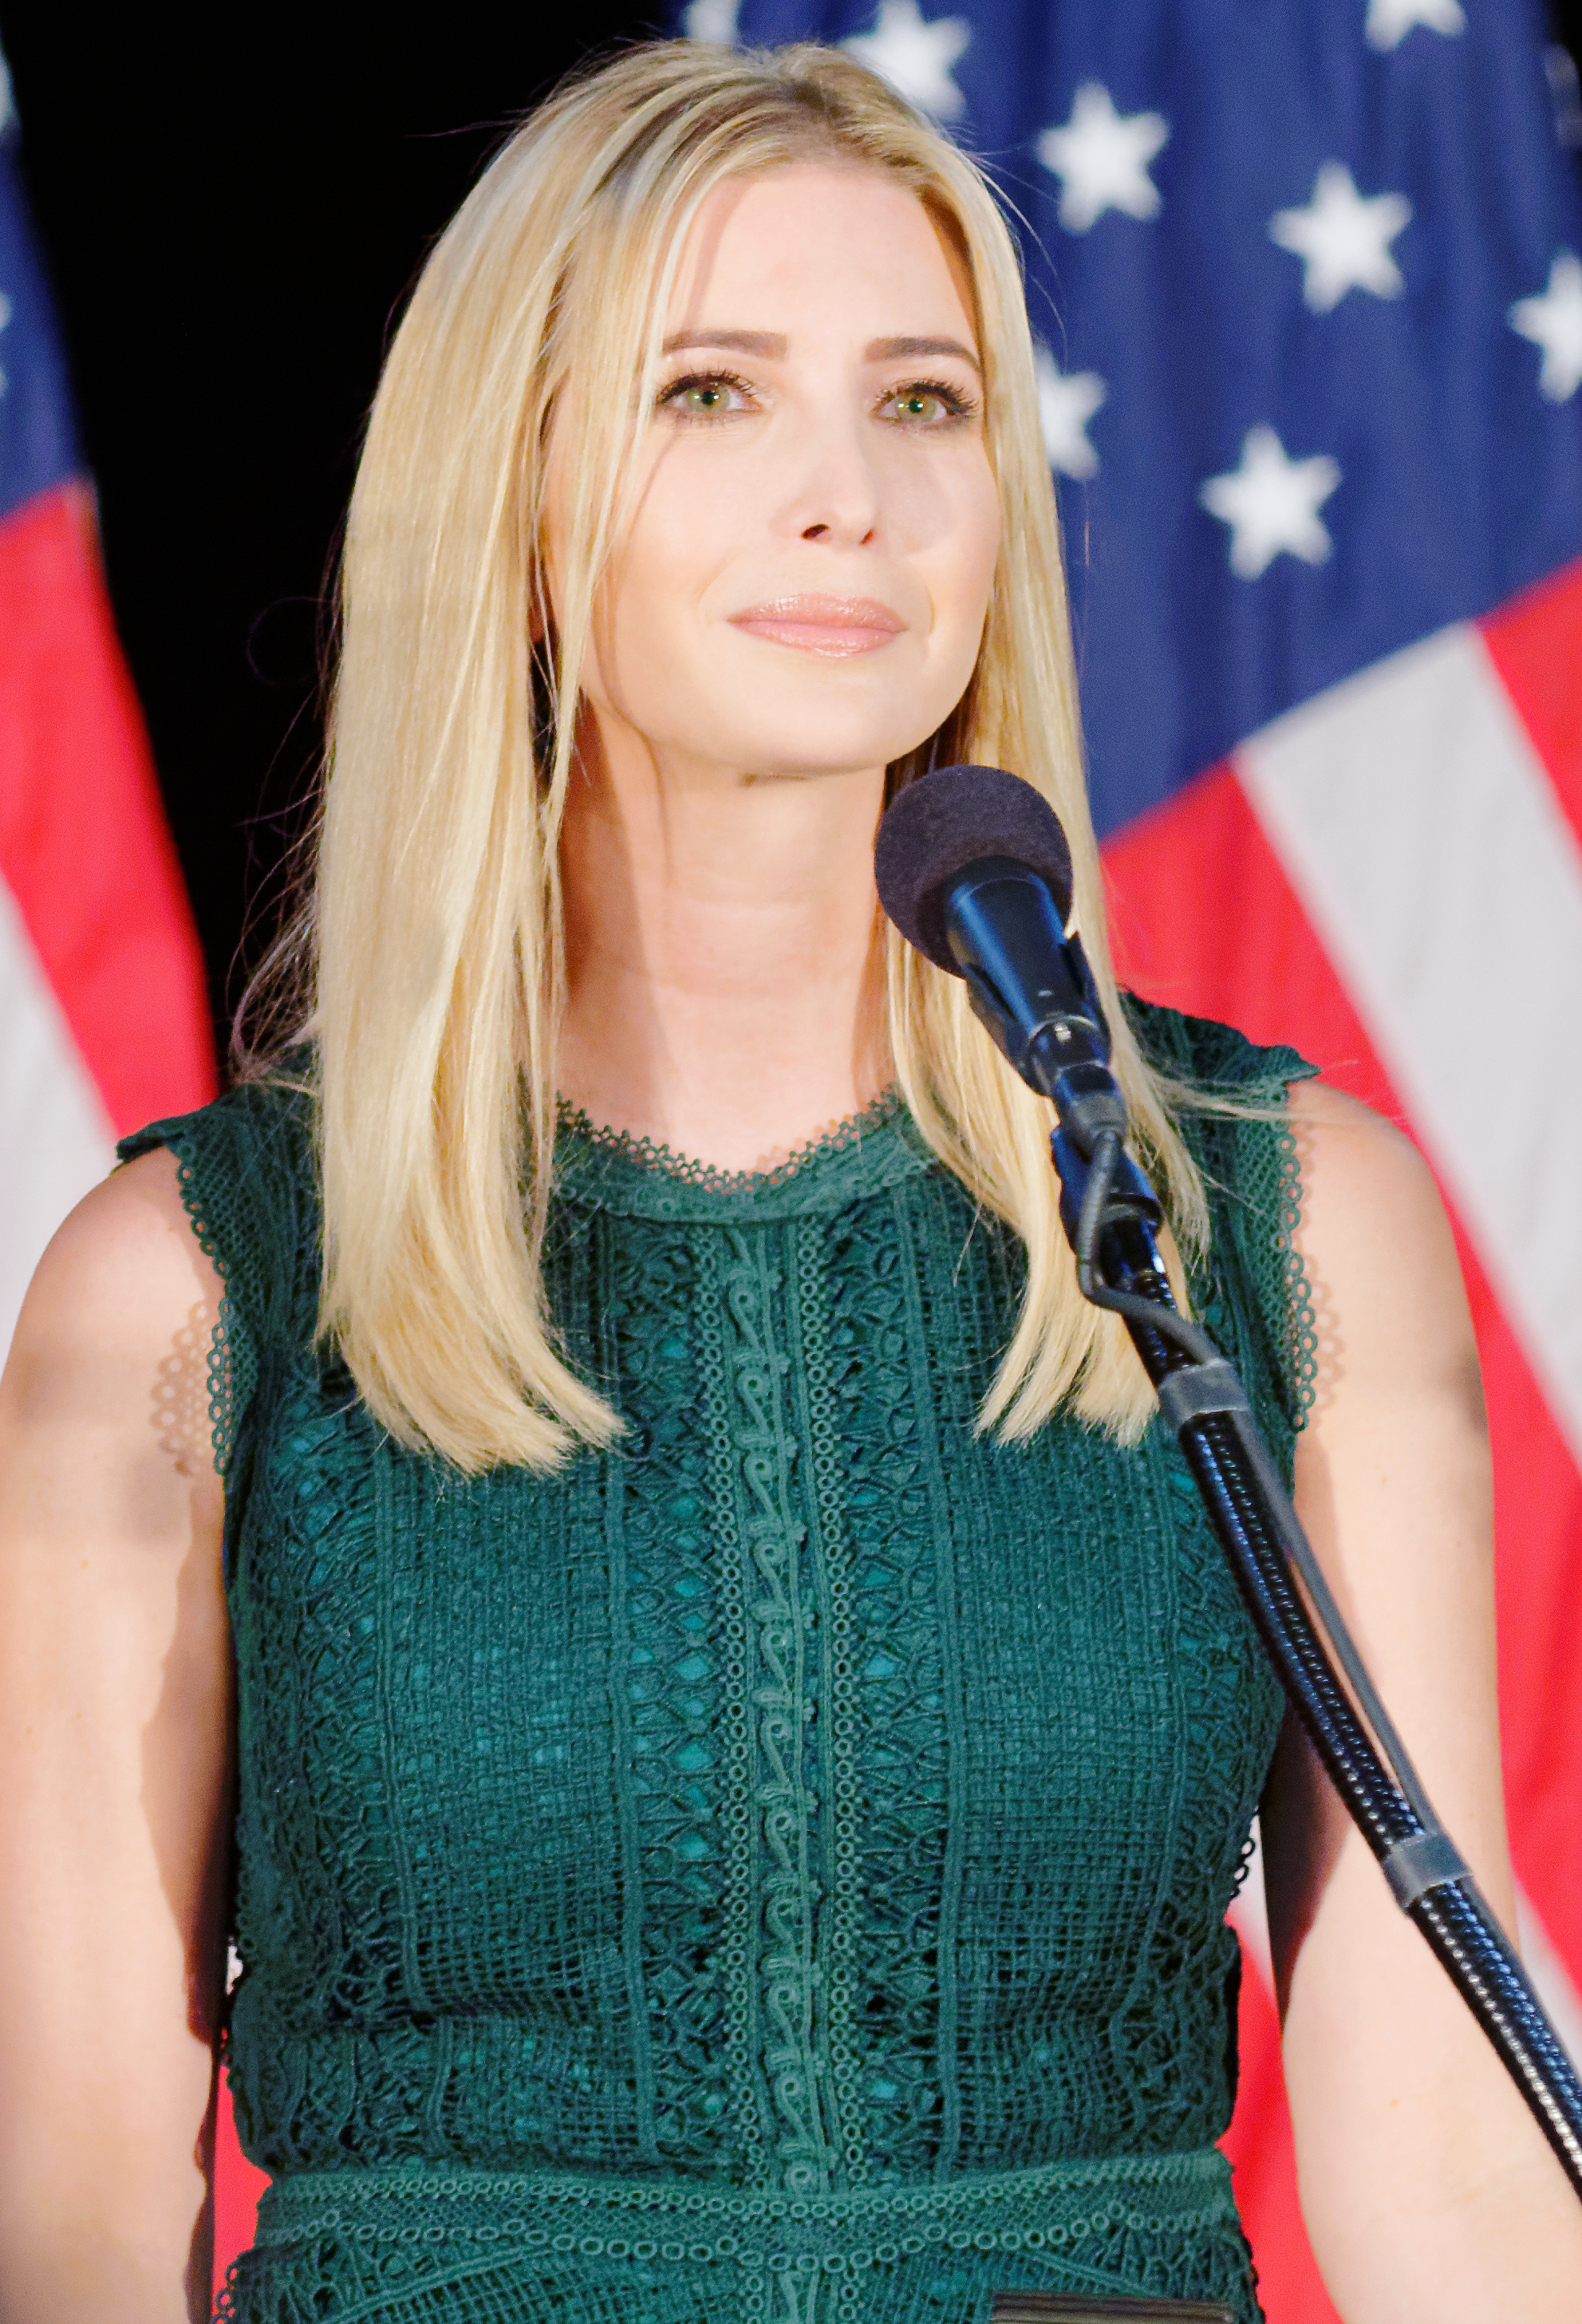 Know About Ivanka Trump